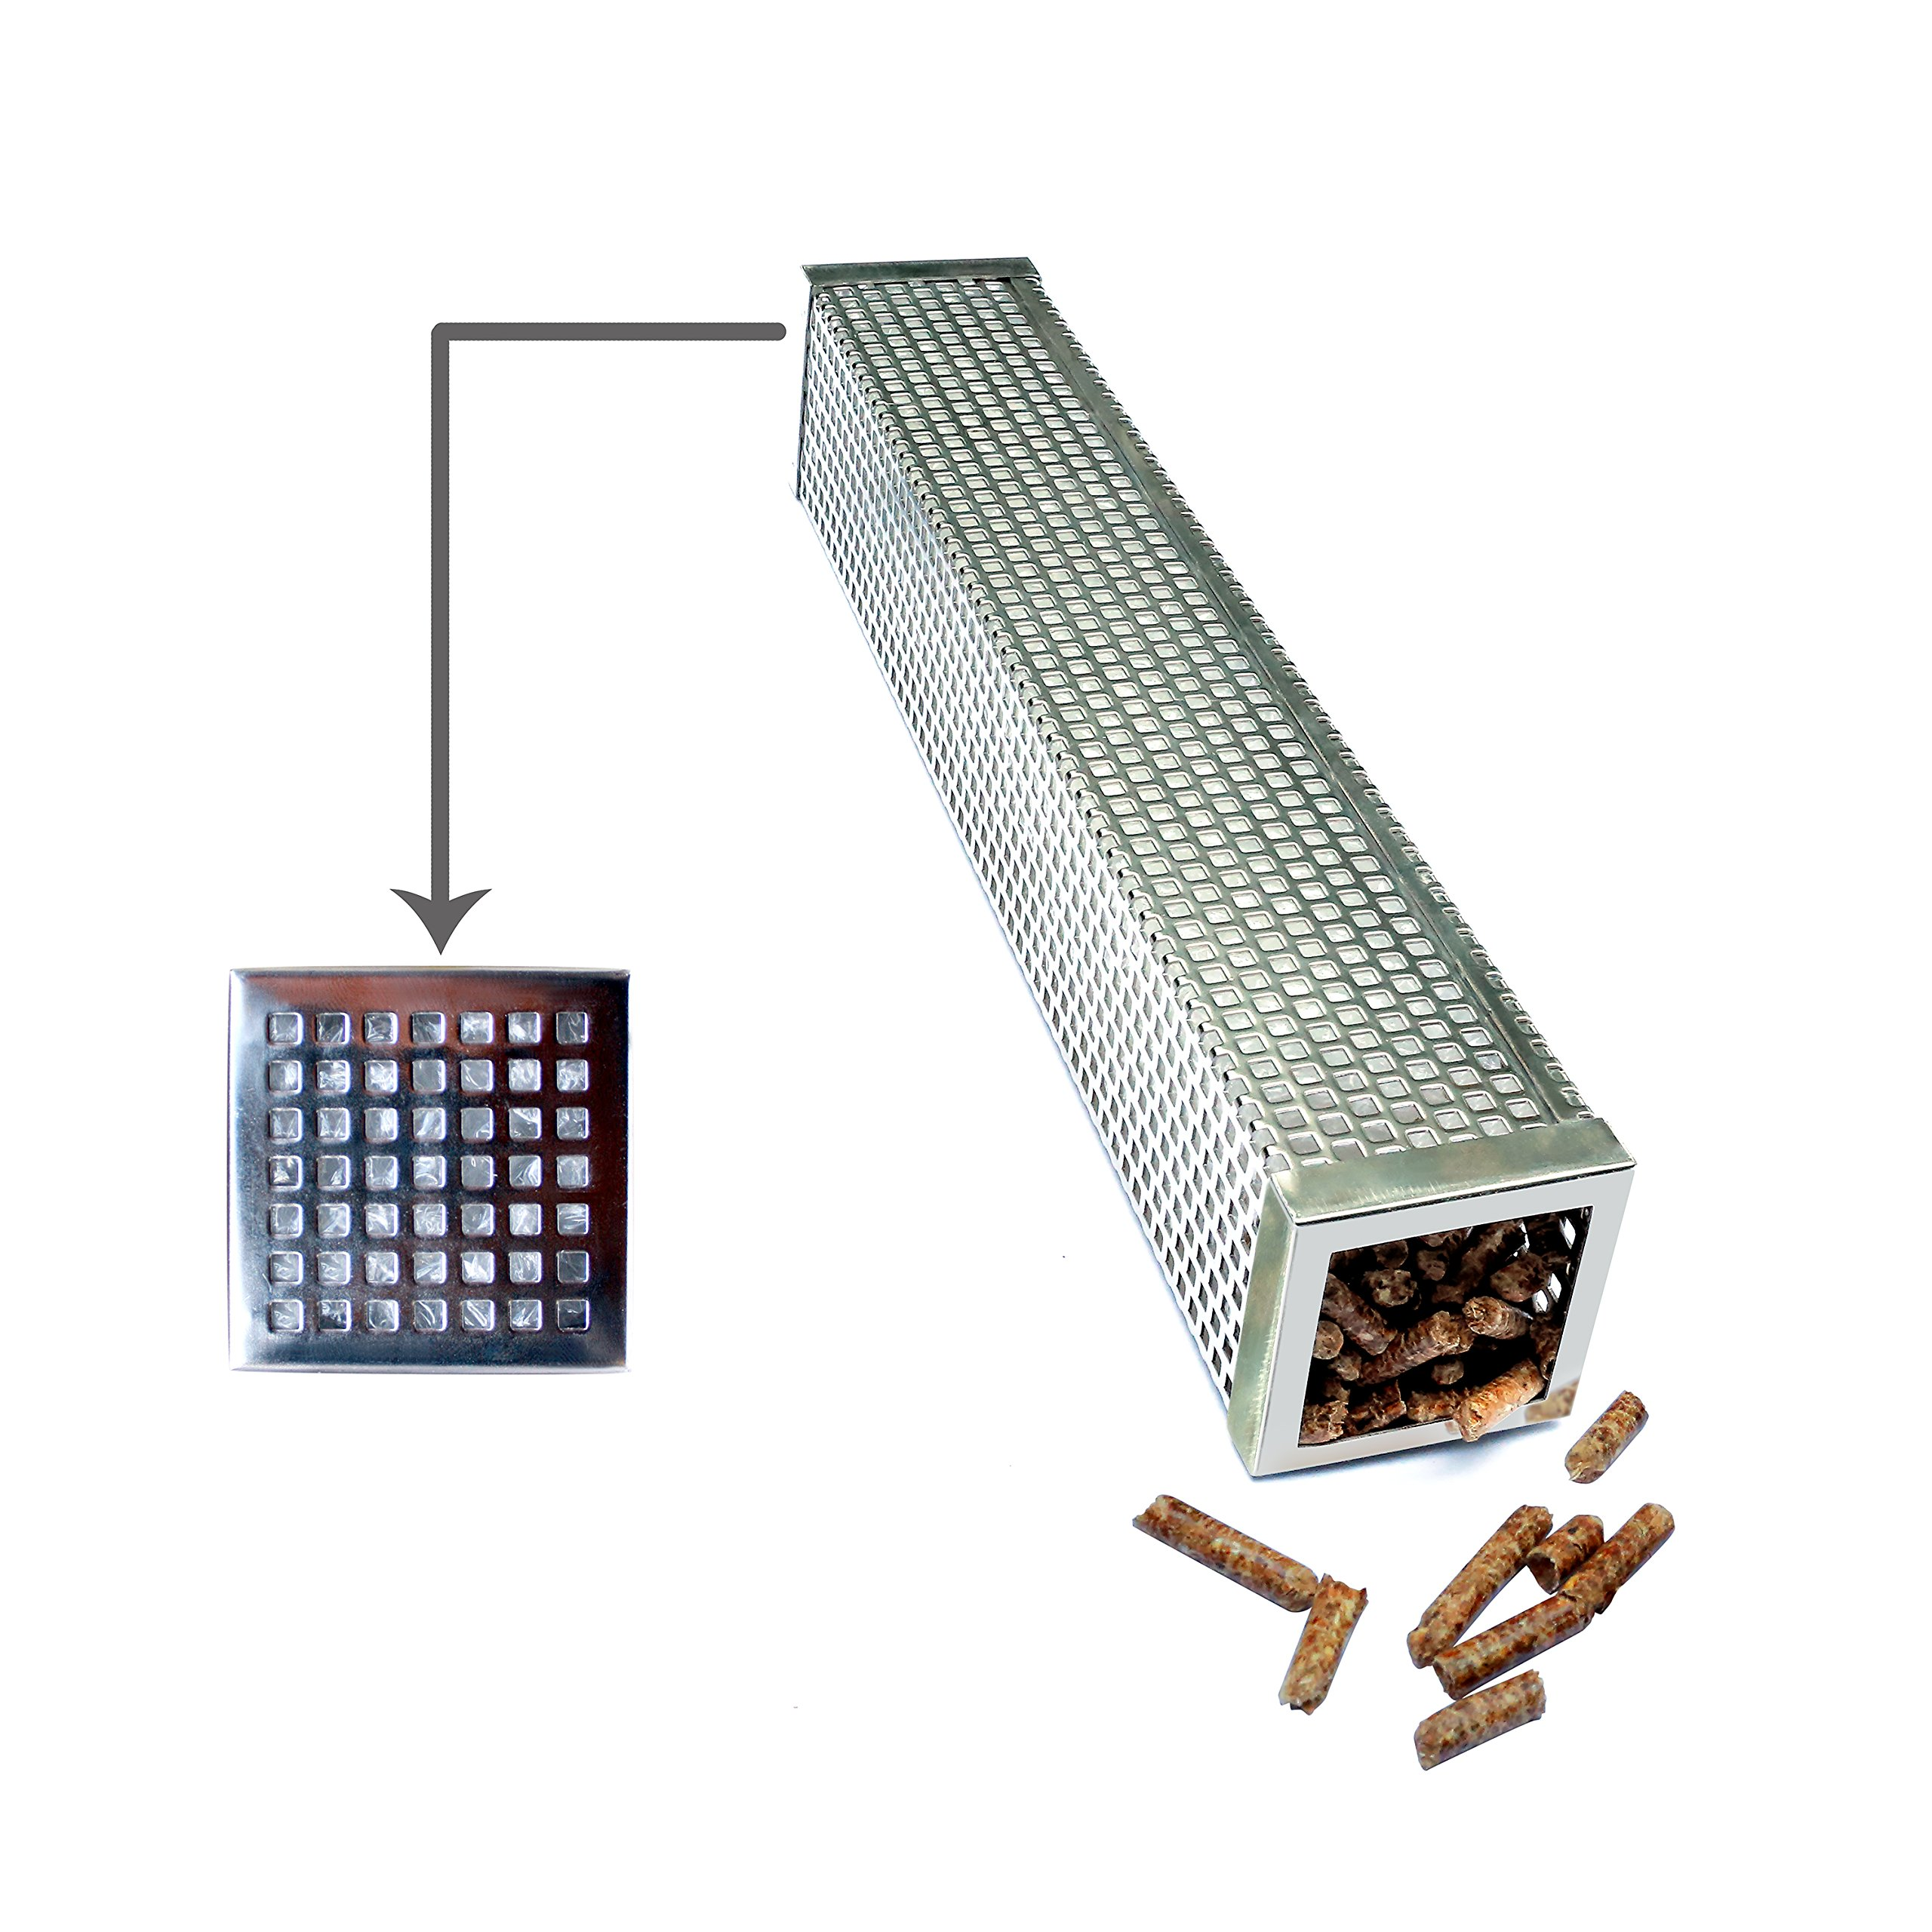 LASENRA BBQ Pellet Smoker Tube Cube 12 Inch Perfect For Hot or Cold Smoking, Additionl Wood Smoke Flavor To Any Electric Gas Charcoal or Pellet Grill, Best Quality And Easy to Carry by LASENRA (Image #3)